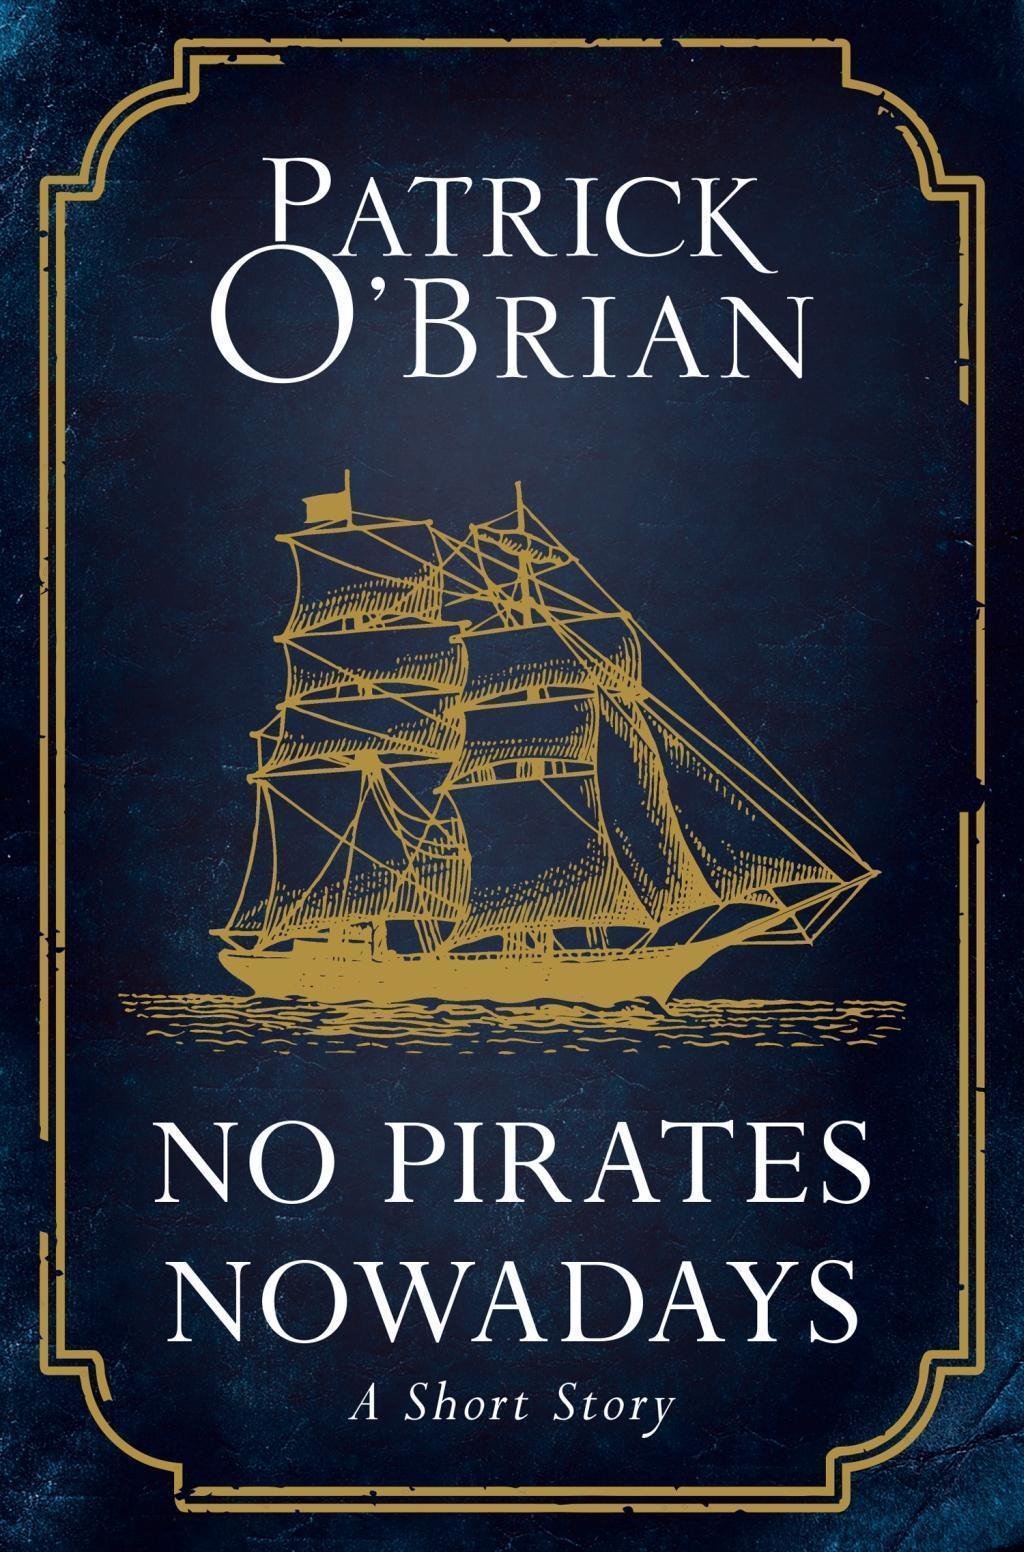 No Pirates Nowadays: A Short Story